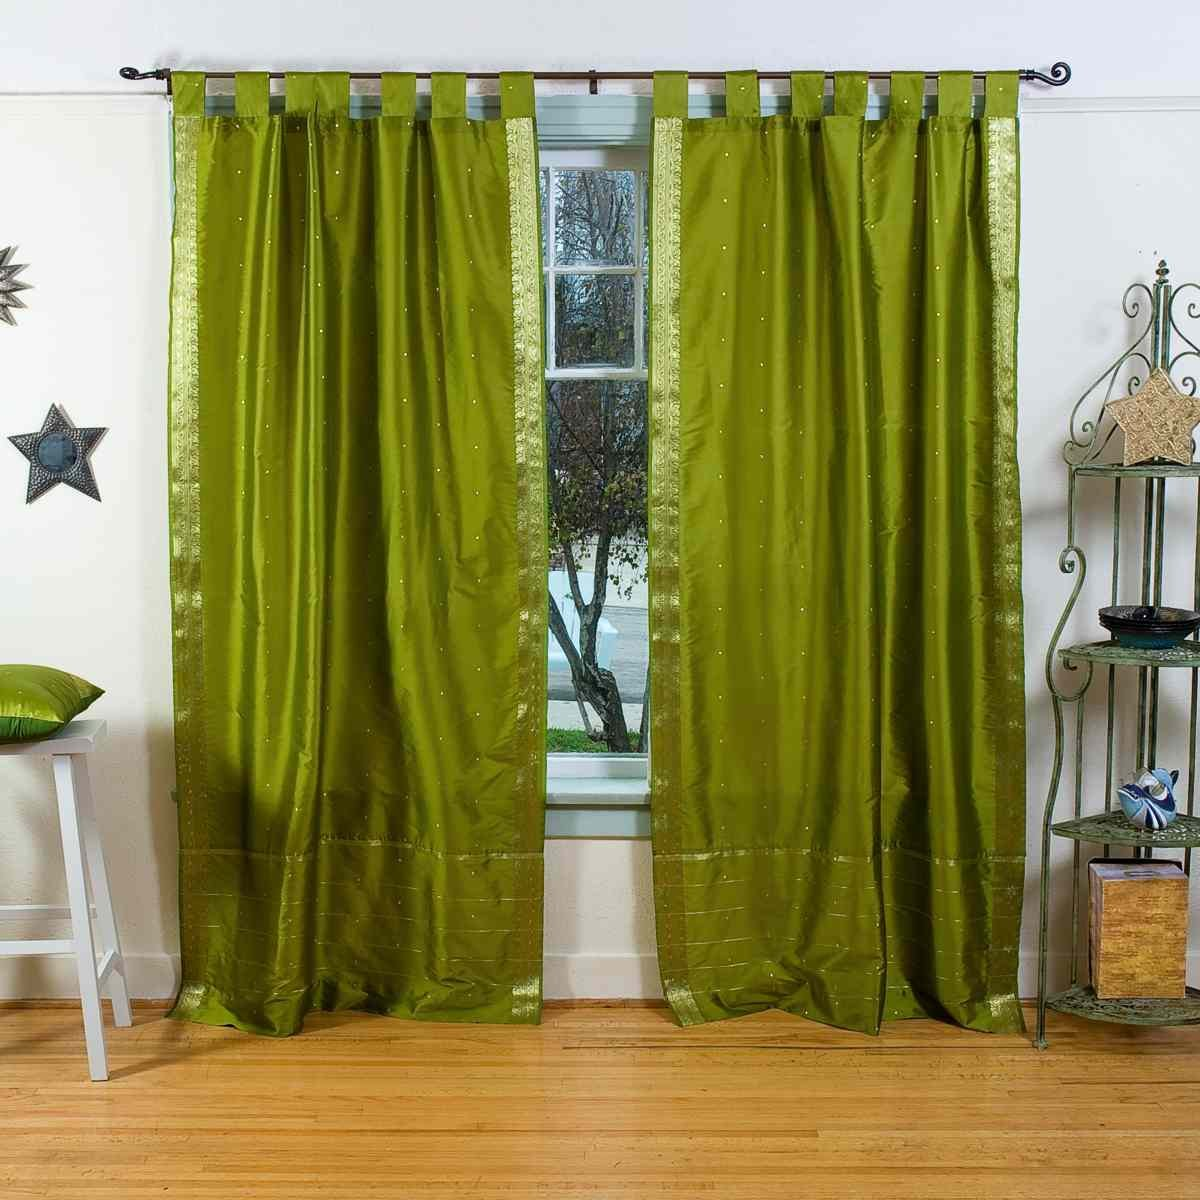 Olive green curtains - Olive Green Tab Top Sheer Sari Curtain Drape Panel 80w X 120l Pair Amazon Co Uk Kitchen Home